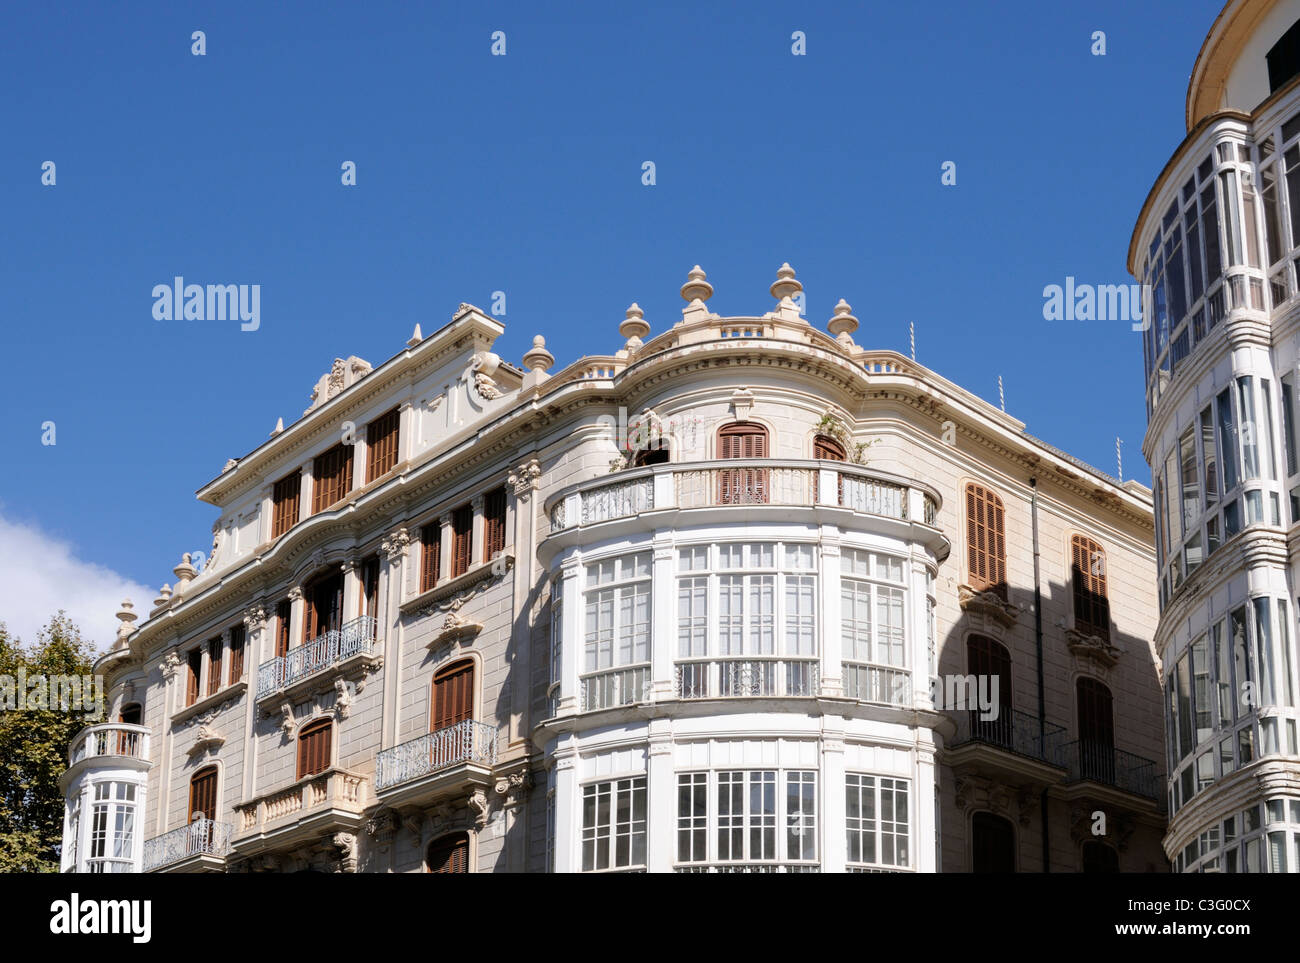 Gebäude in Palma, Mallorca, Architekt Gaspar Bennàssar i Moner. - Building in Palma, Majorca, architect - Stock Image